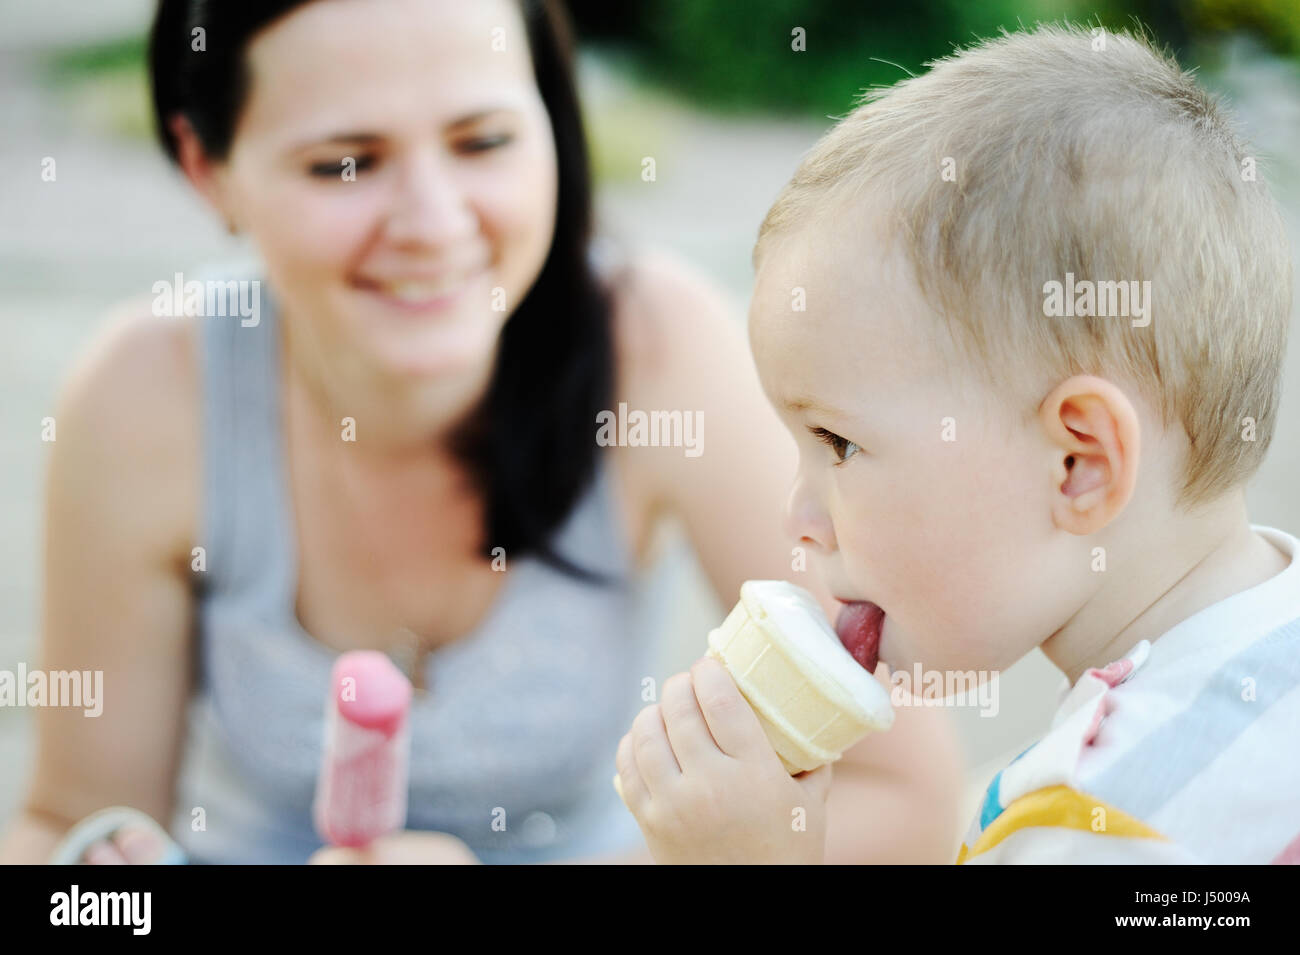 baby and mom eating ice cream - Stock Image